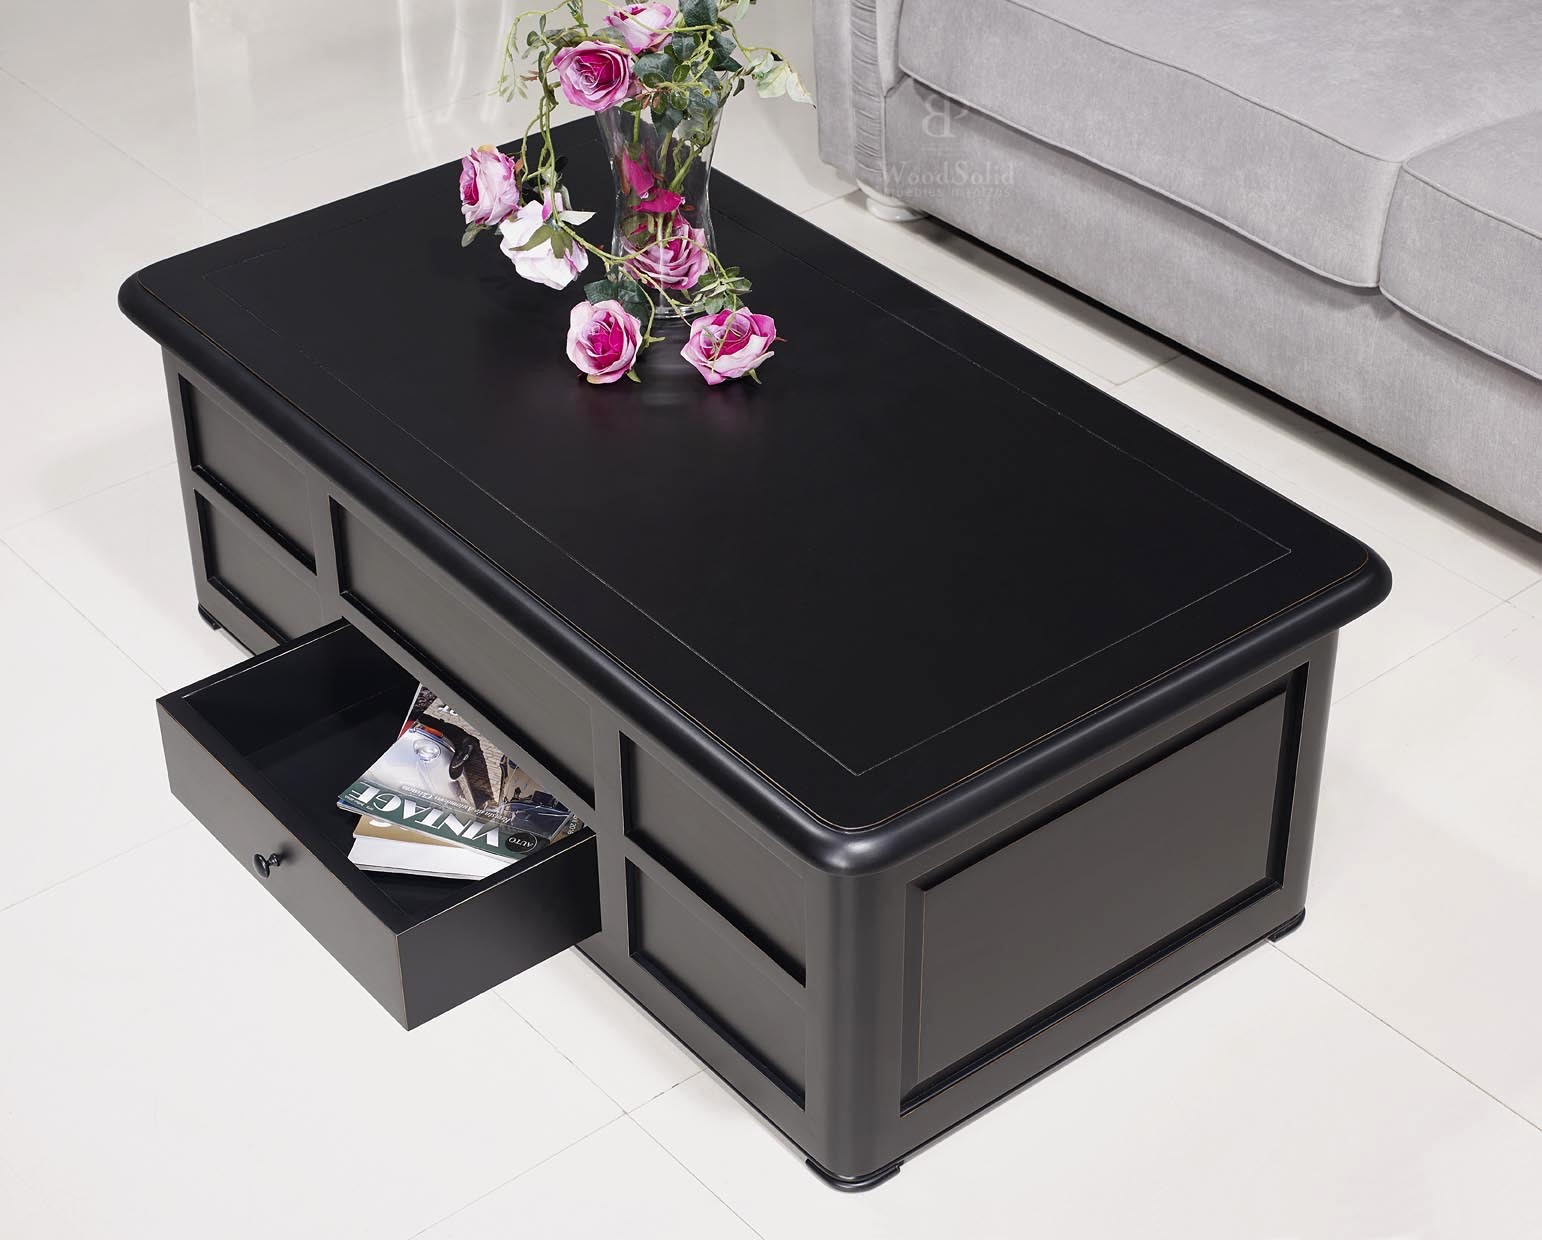 table basse bar ine en merisier de style louis philippe laqu noir meuble en merisier massif. Black Bedroom Furniture Sets. Home Design Ideas